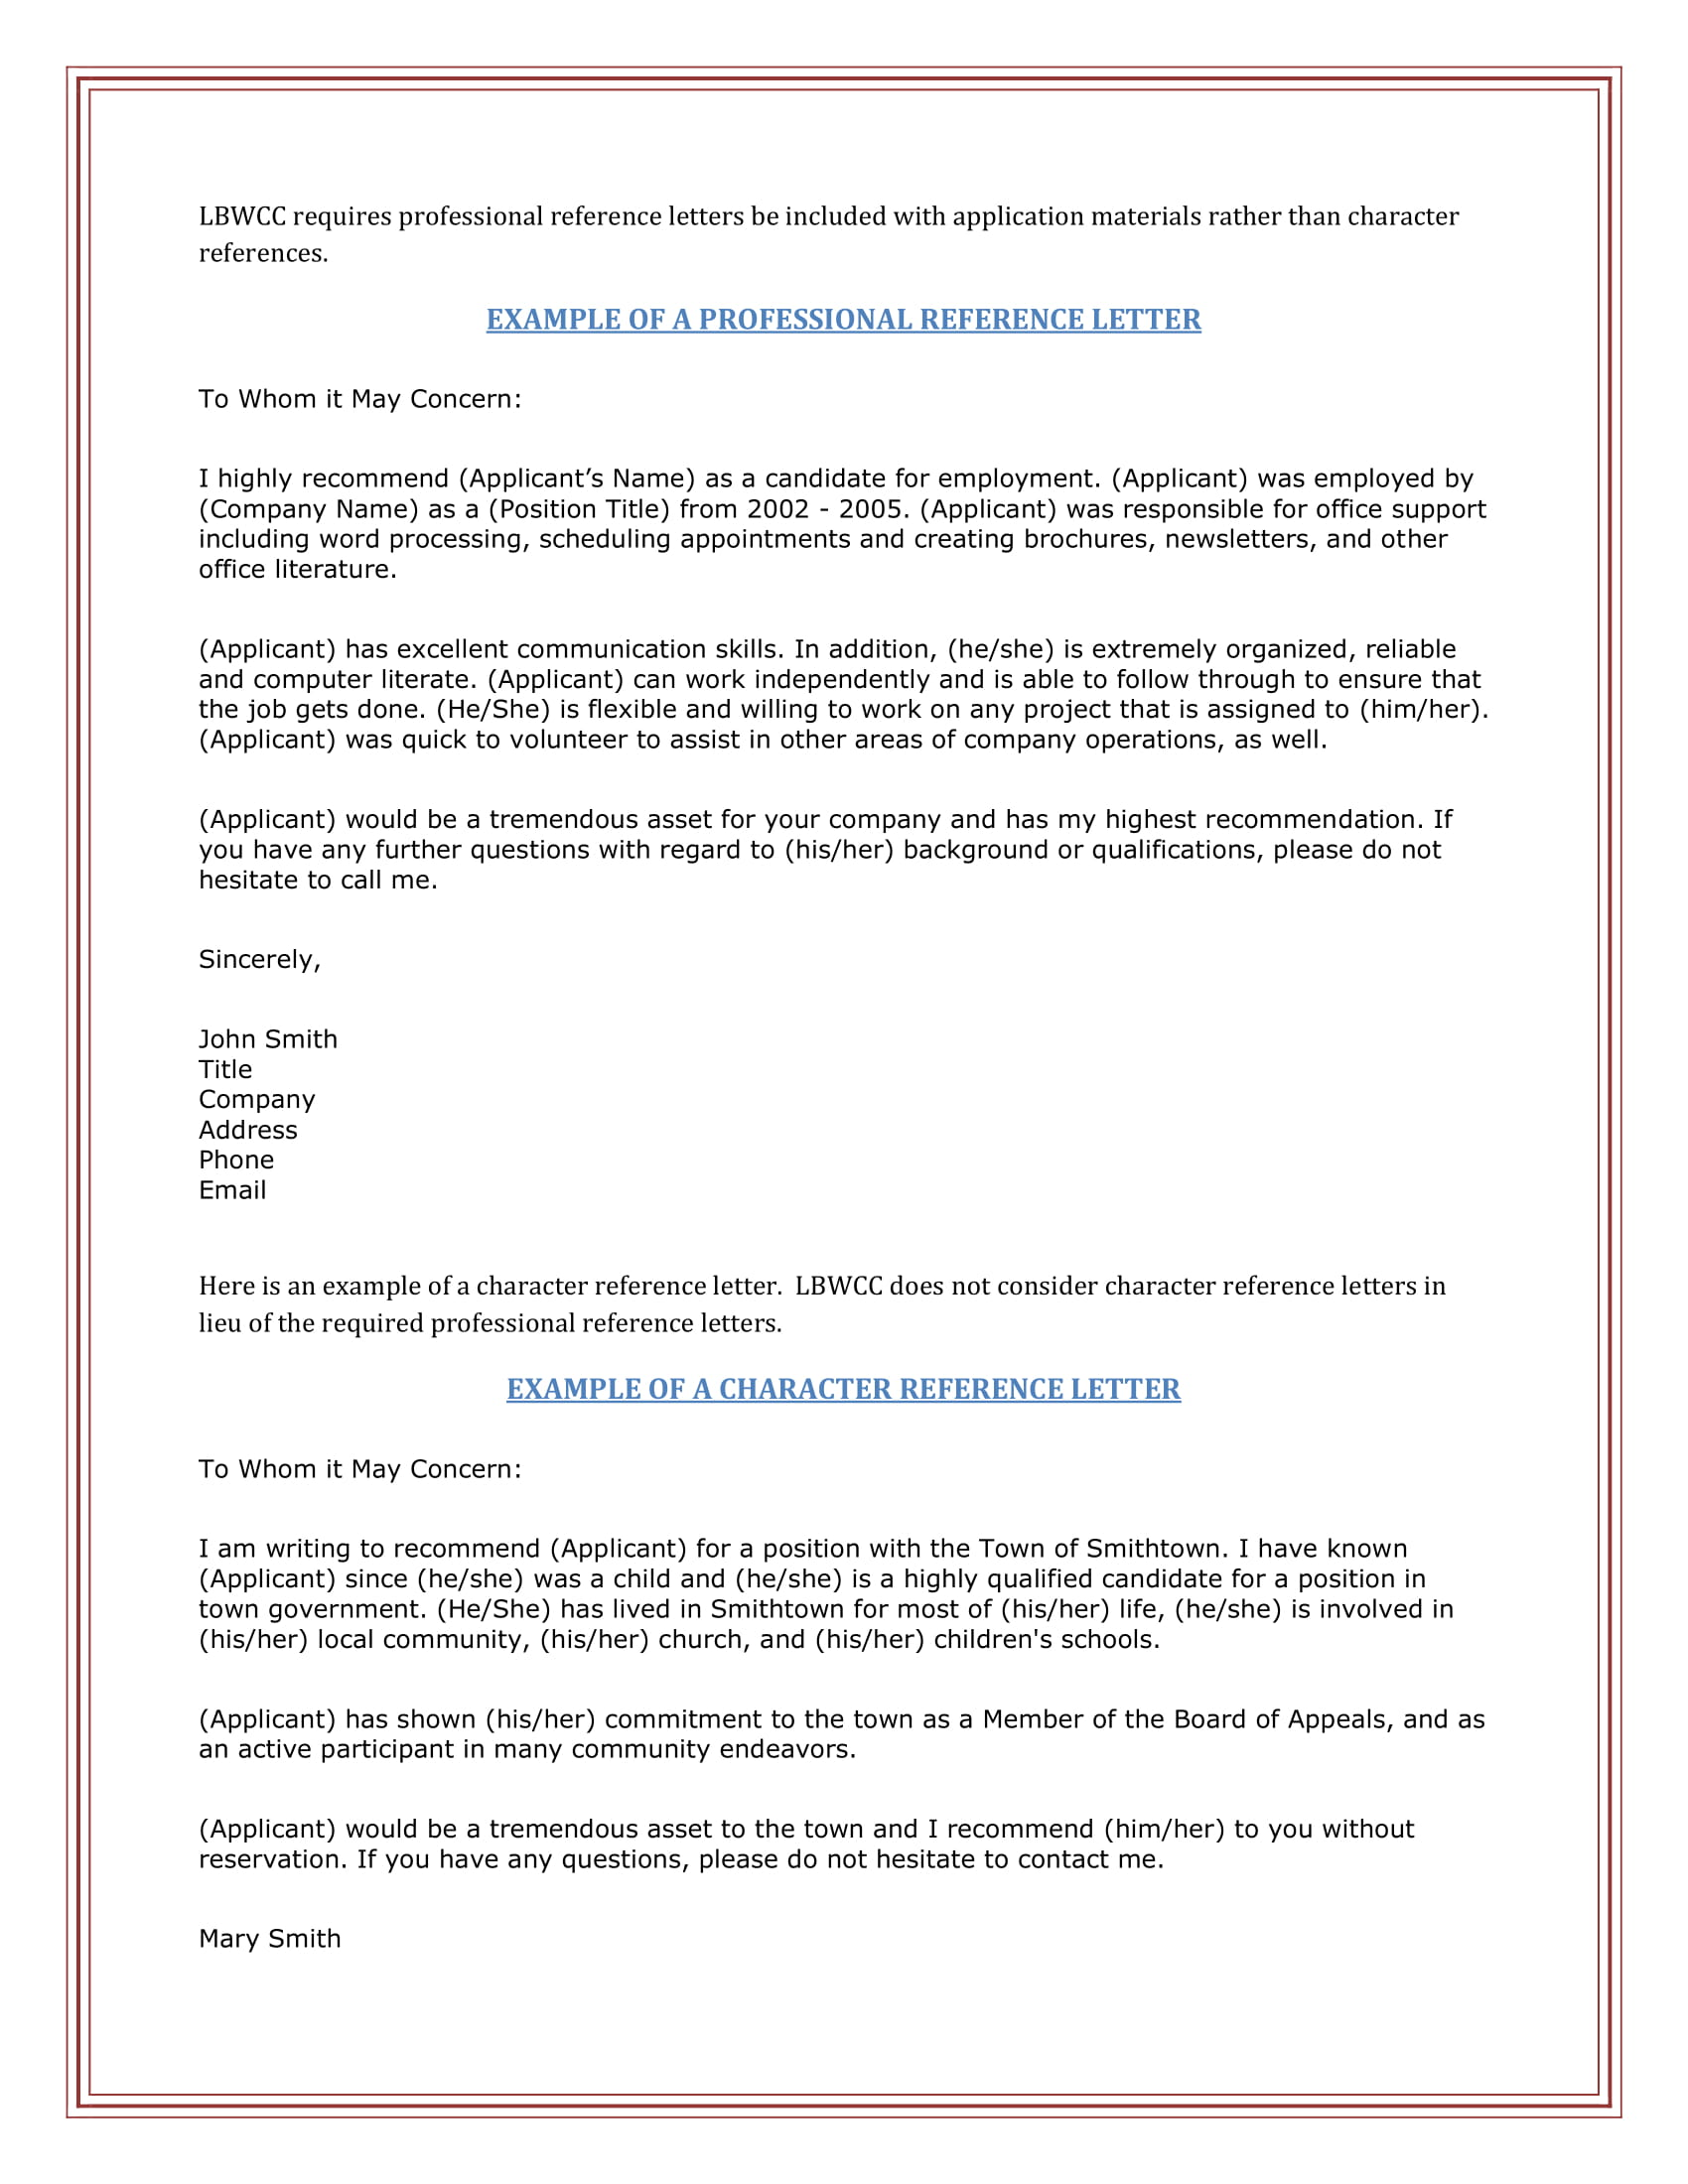 example of a professional reference letter